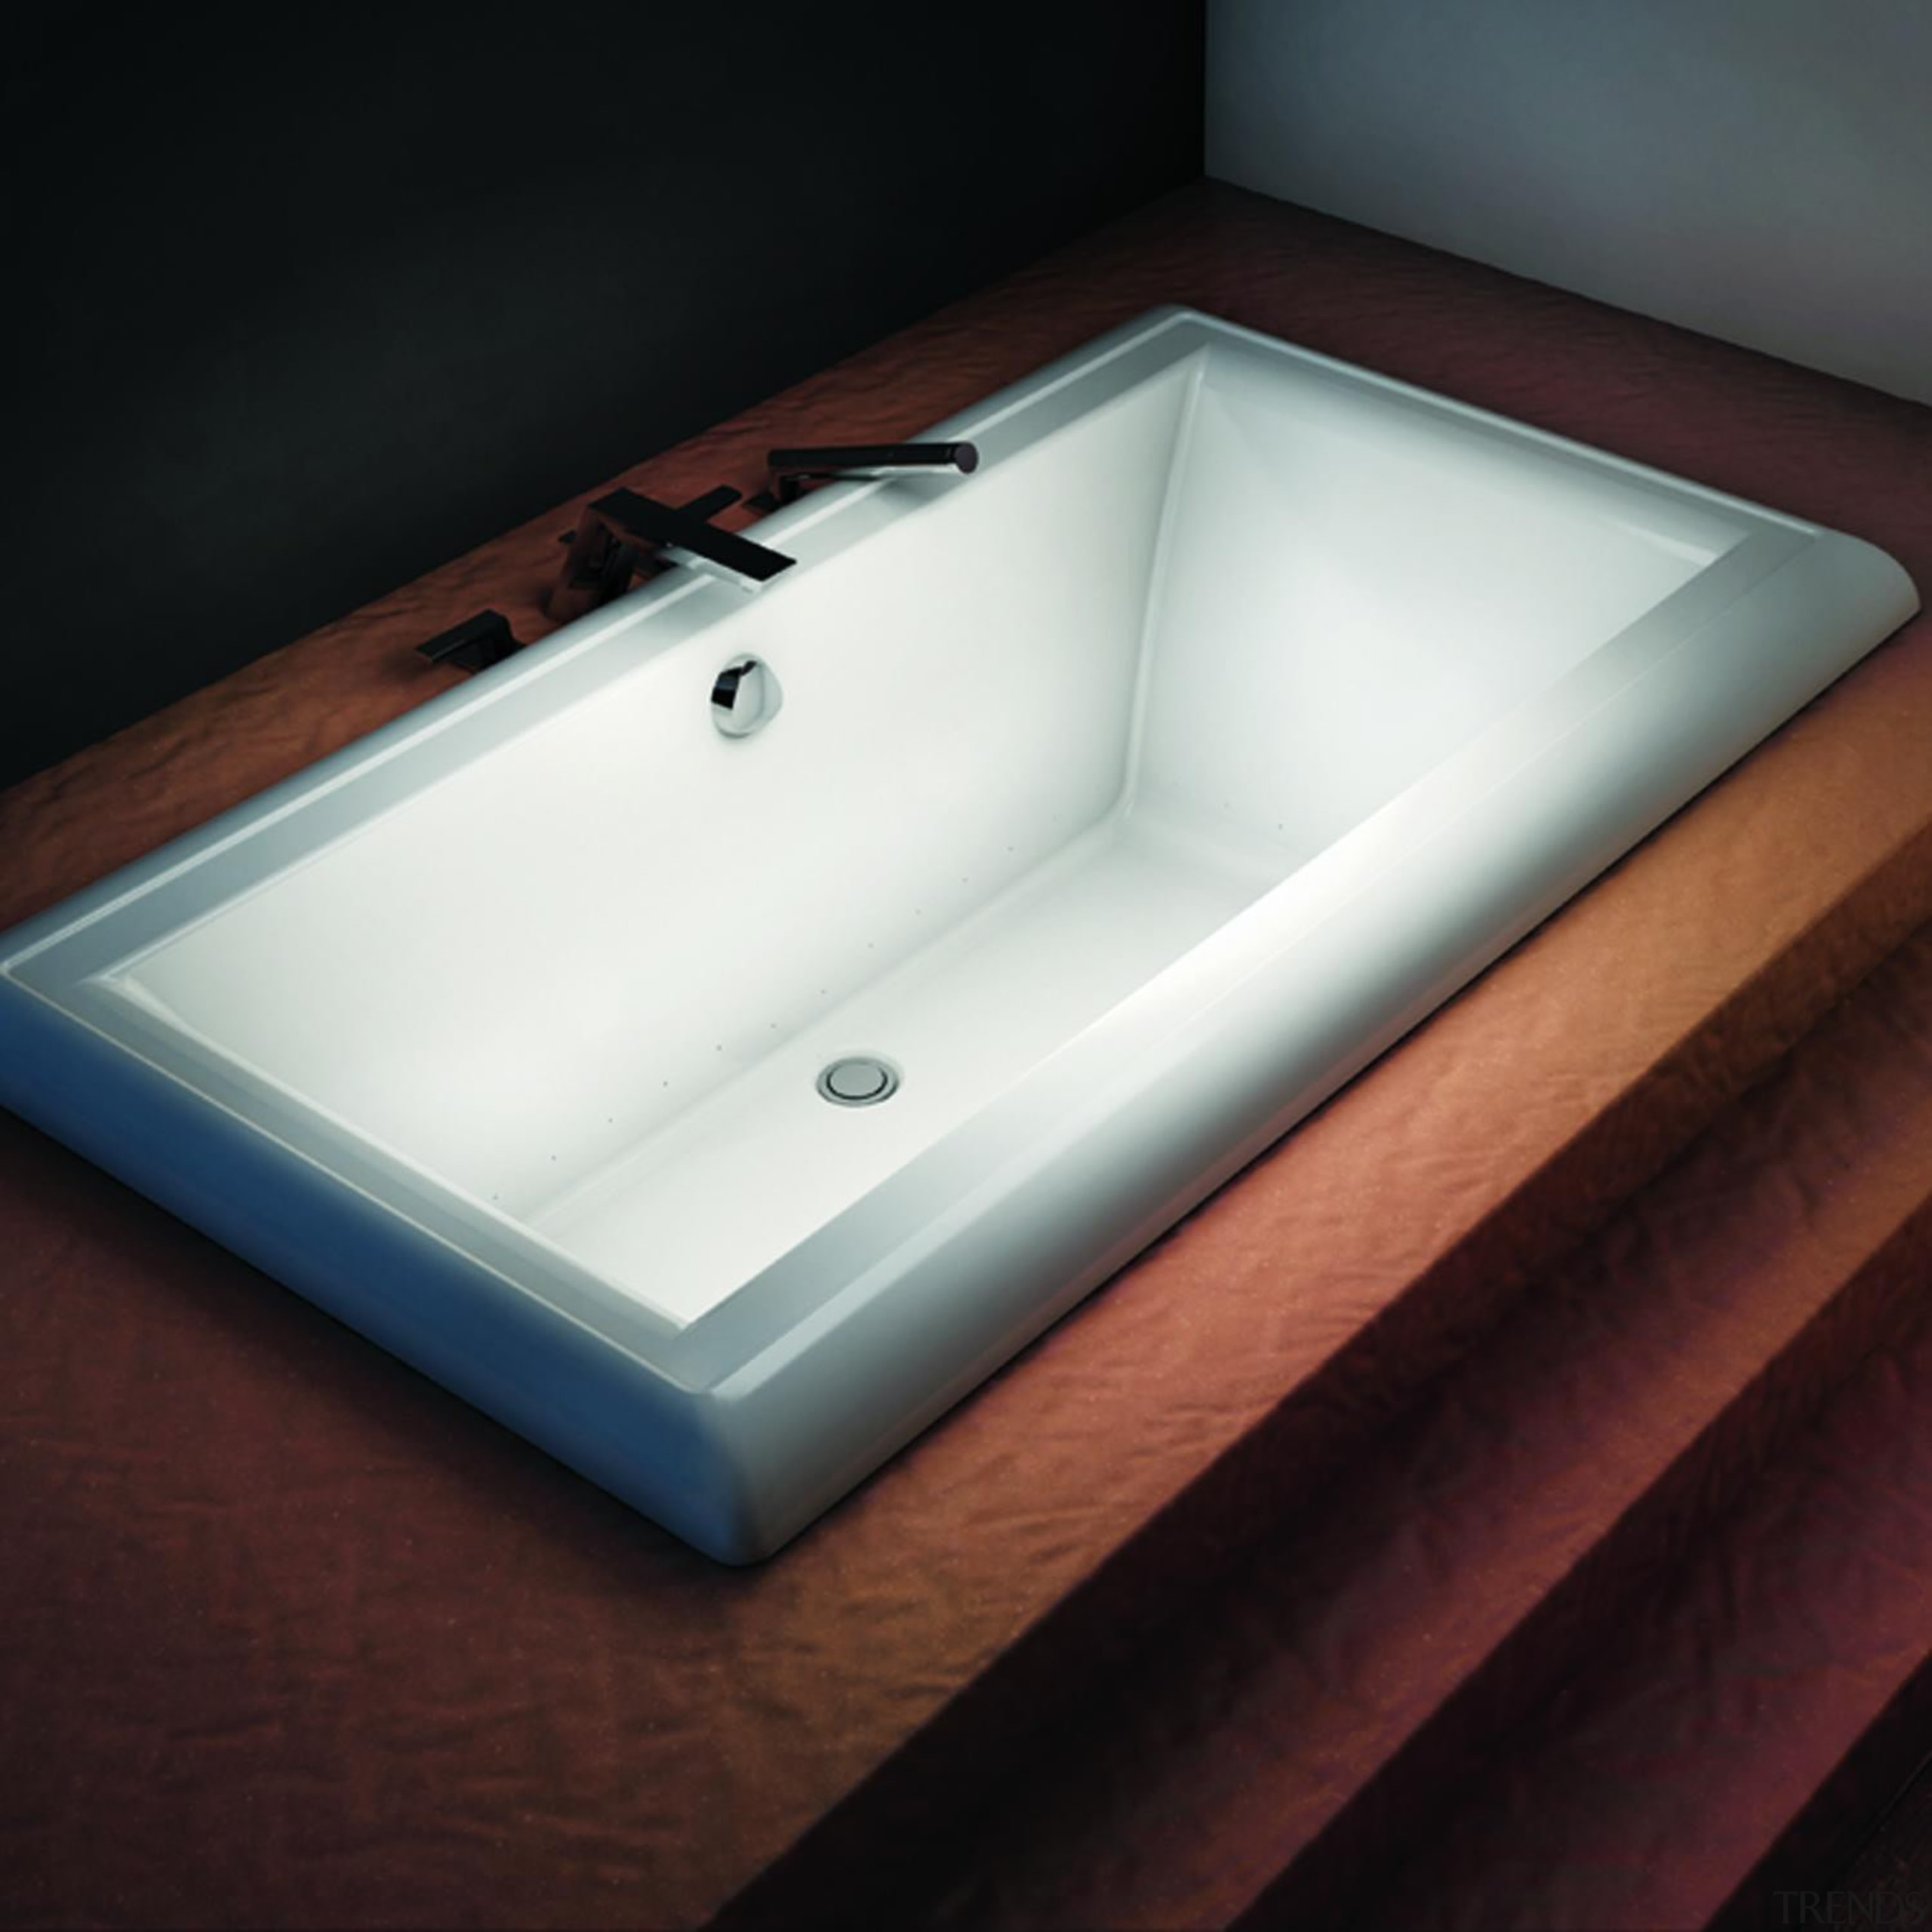 The Design Series of the Origami collection features bathroom sink, bathtub, plumbing fixture, product design, sink, tap, black